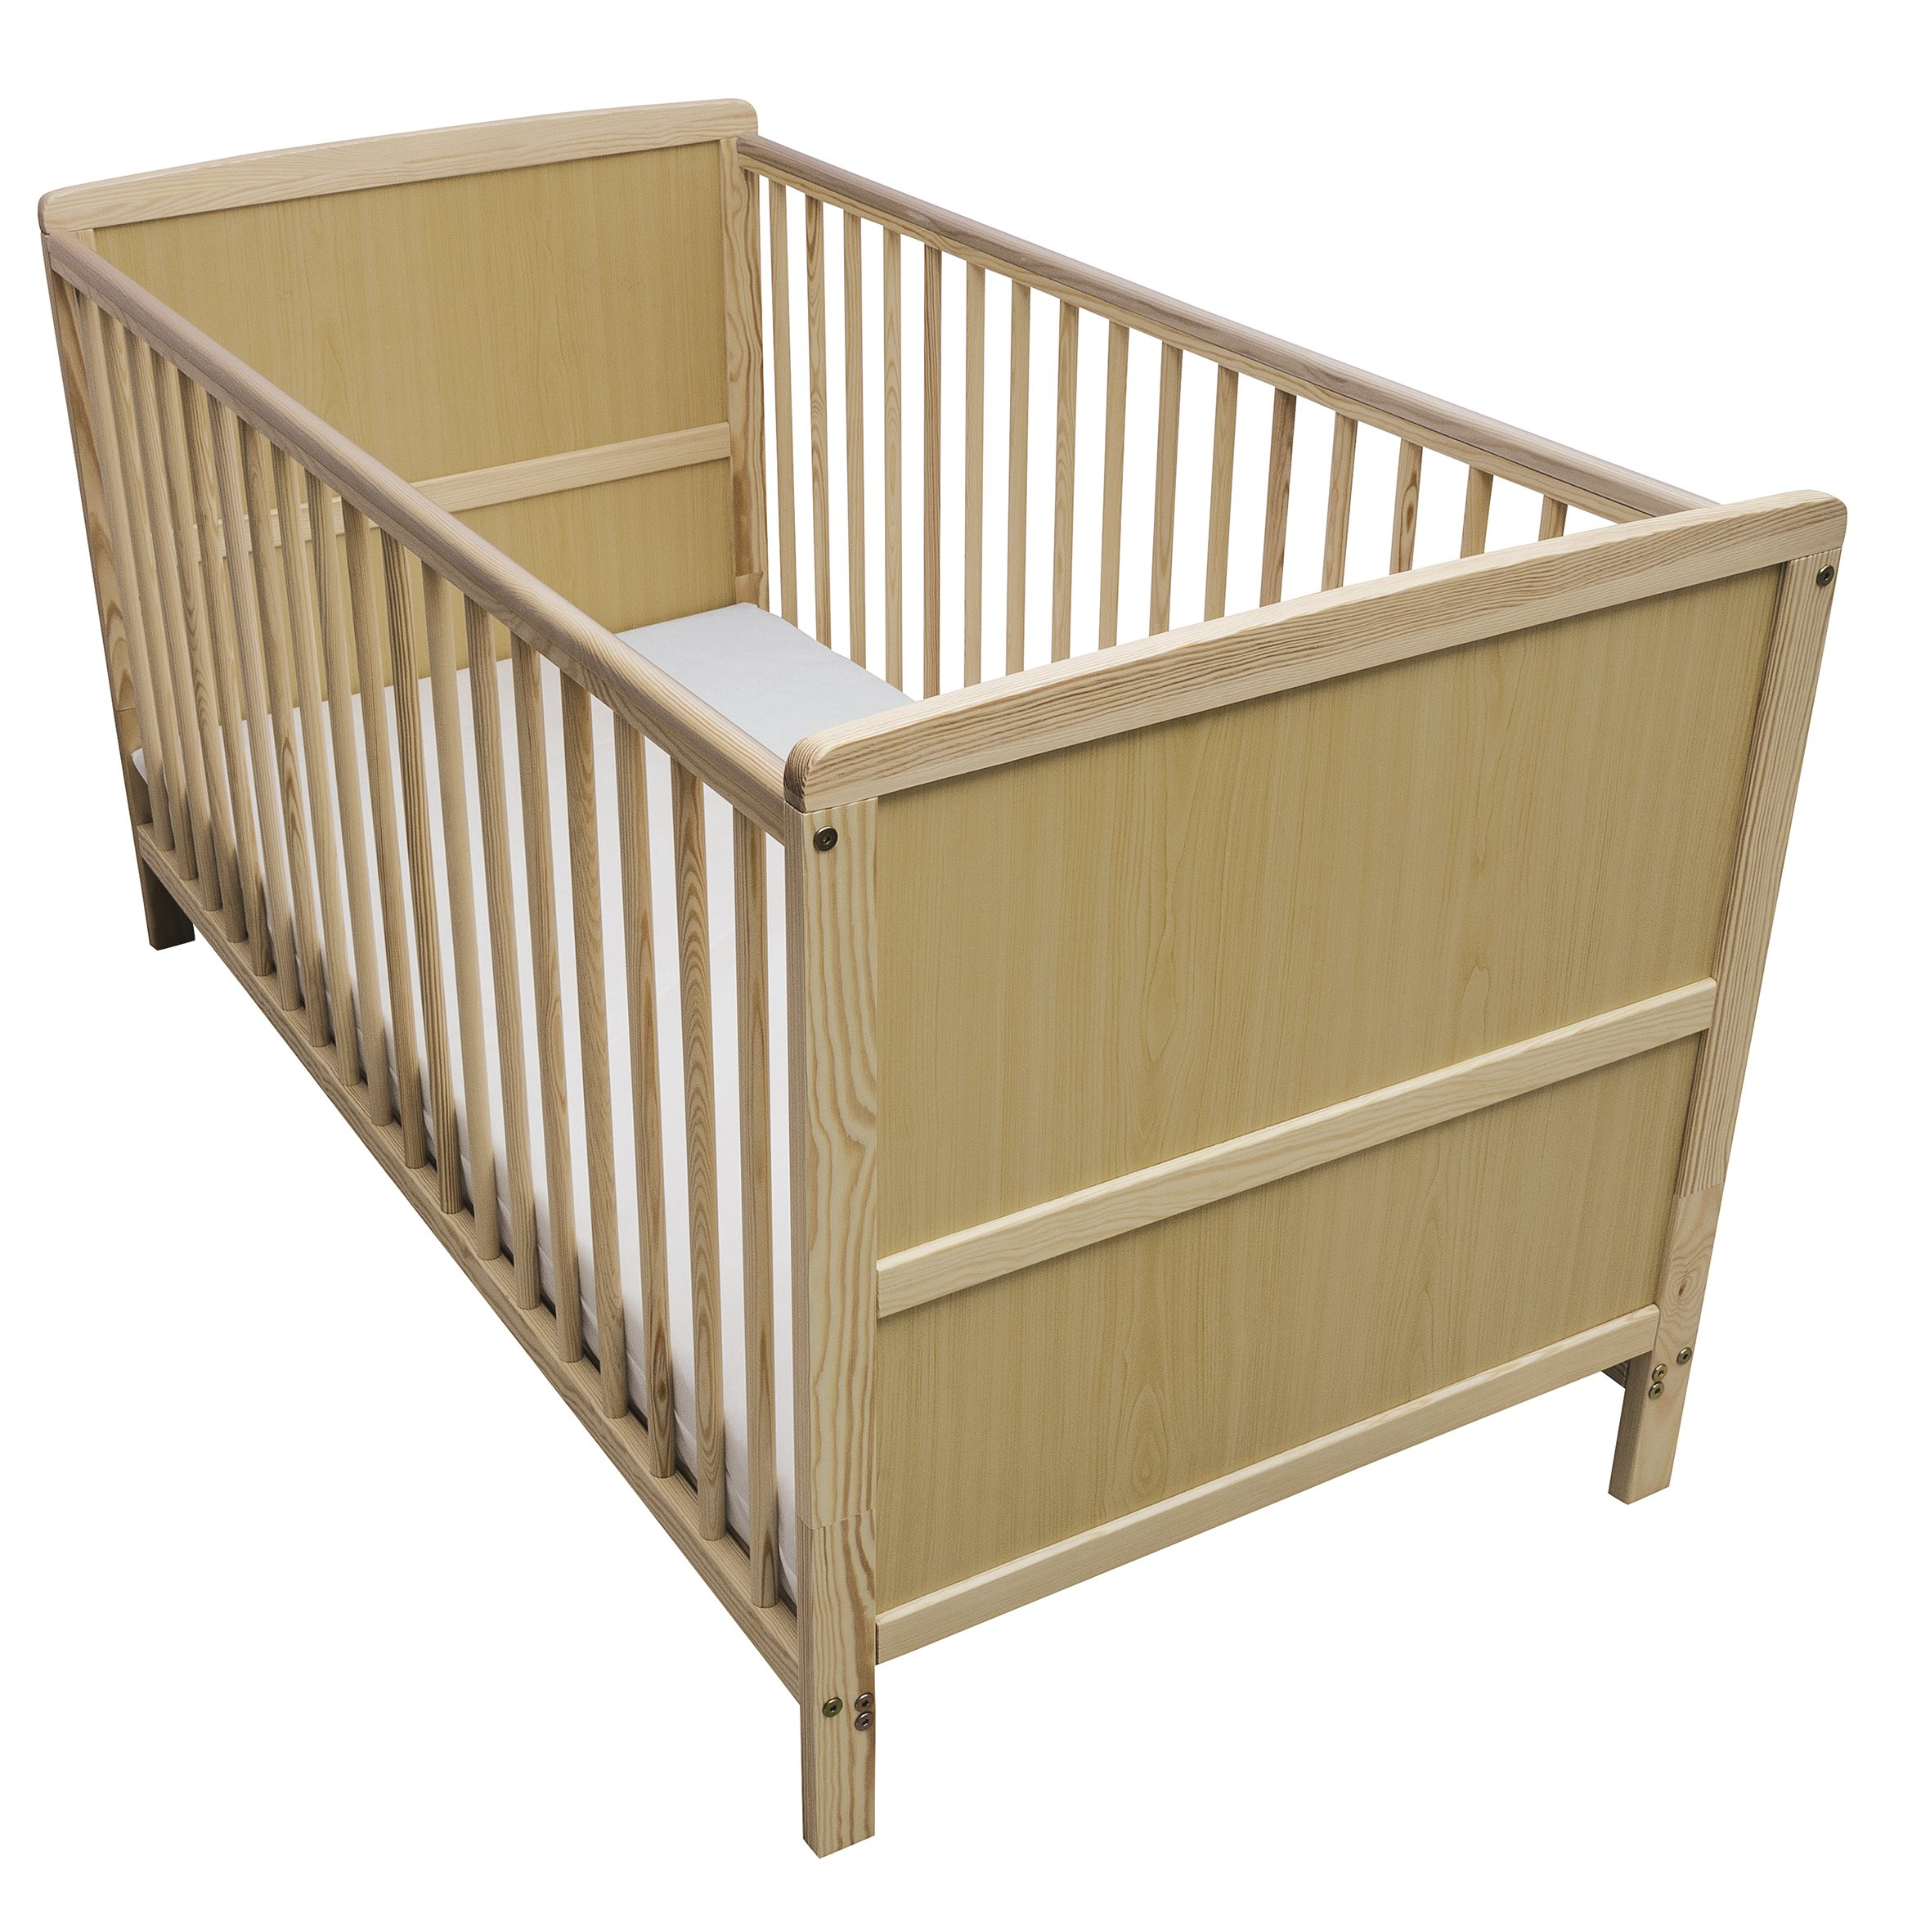 Kinder Valley Solid Pine Wood 2-in-1 Junior Cot Bed, Natural, 144 x 76 x 80 cm